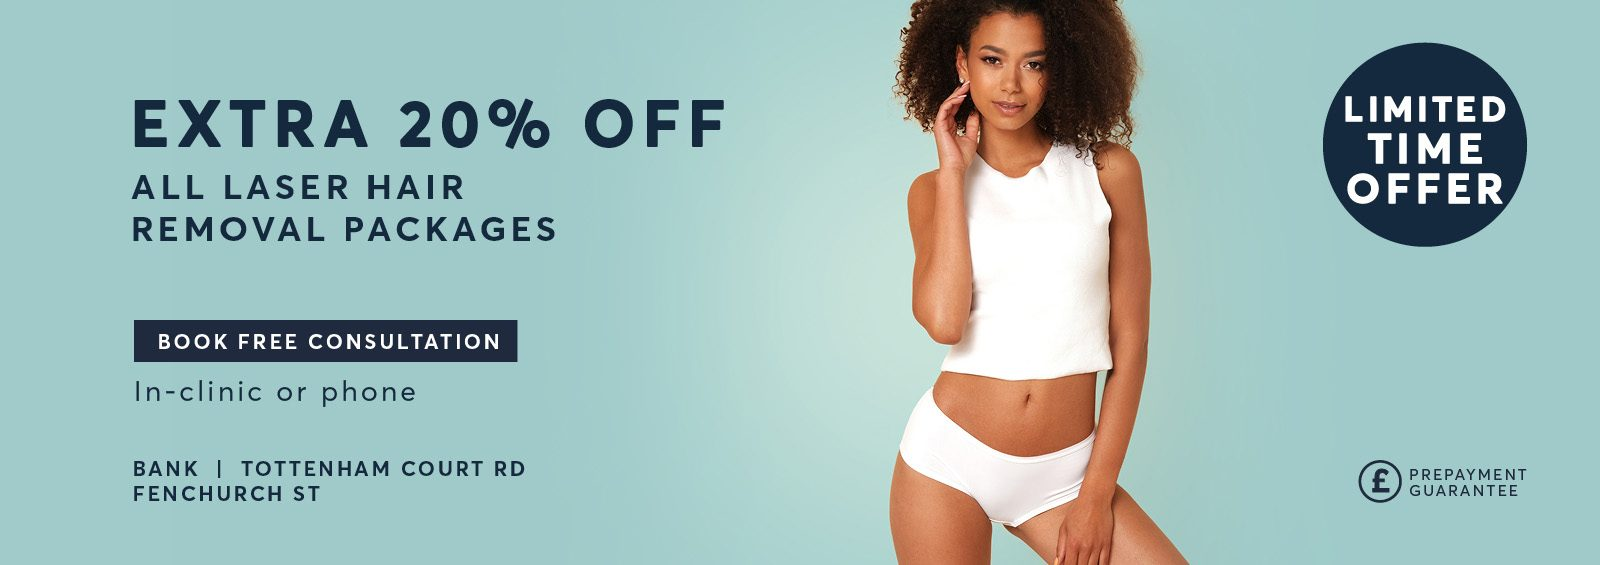 Extra 20% Off Laser Hair Removal